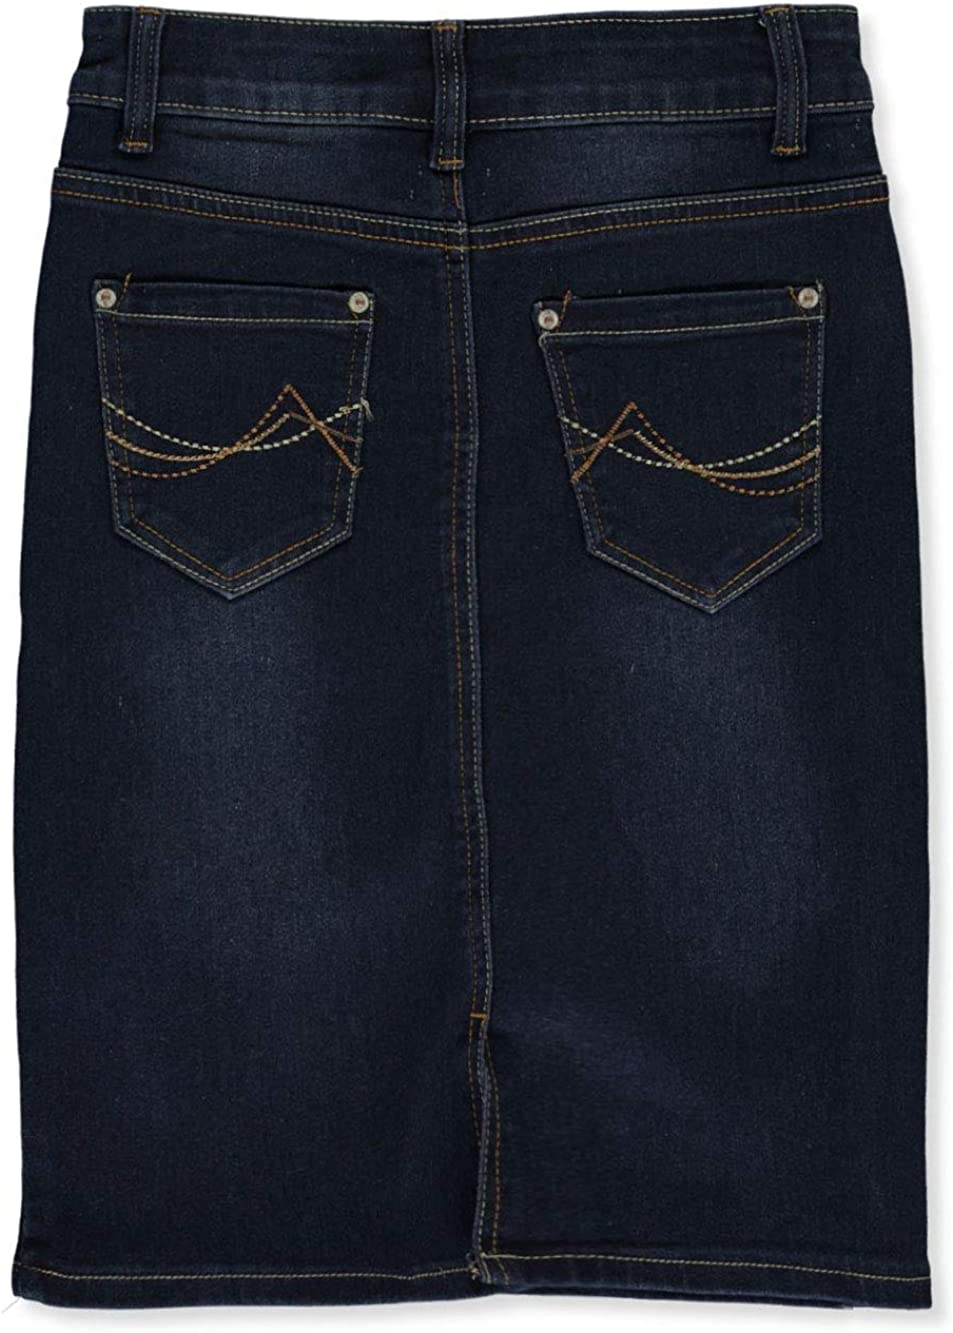 Ailis Girls Stitched Denim Pencil Skirt Ko.Ko